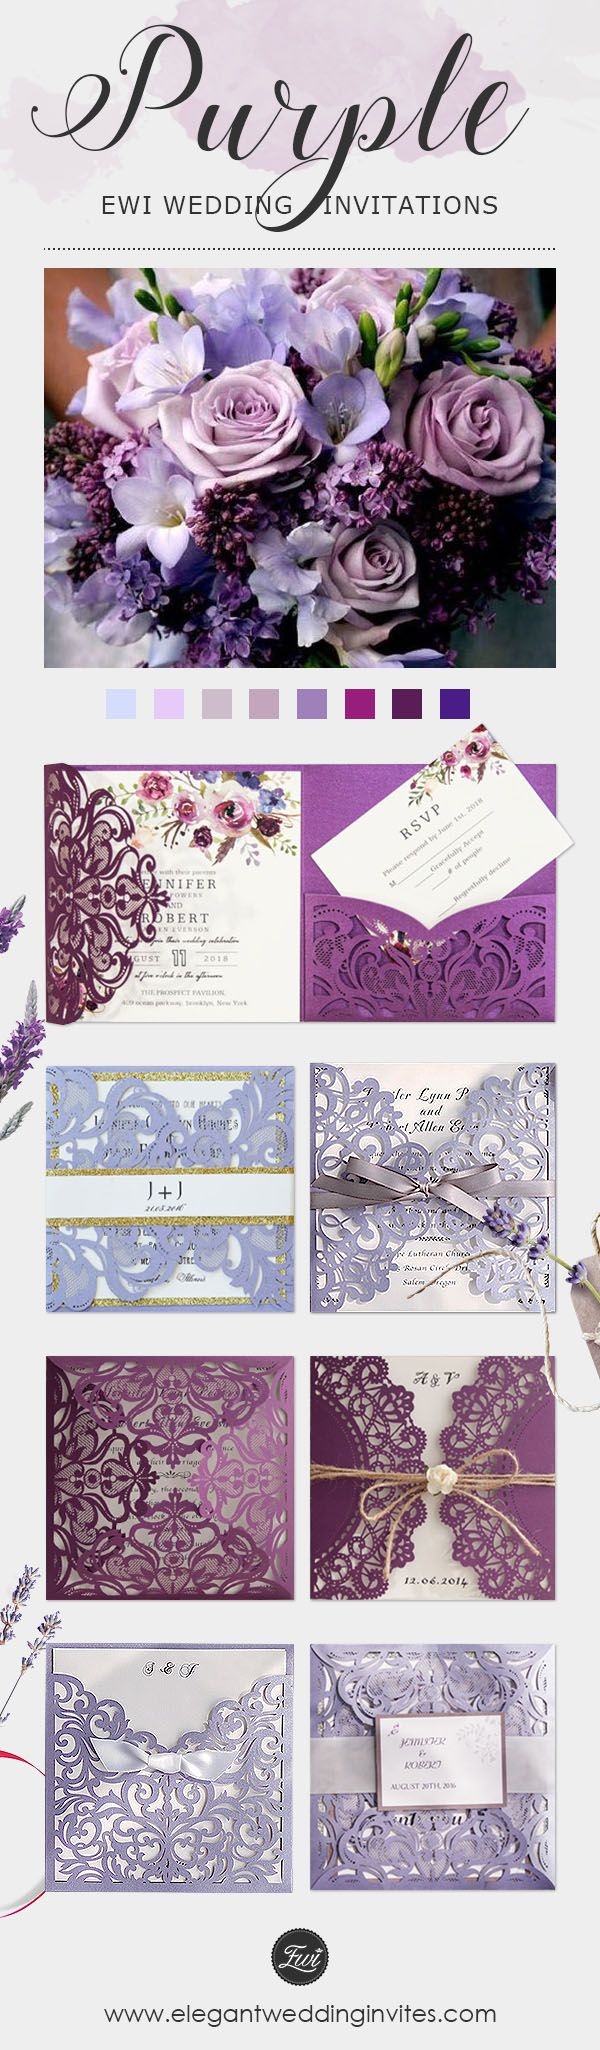 Affordable Wedding Invitations in Shades of Purple